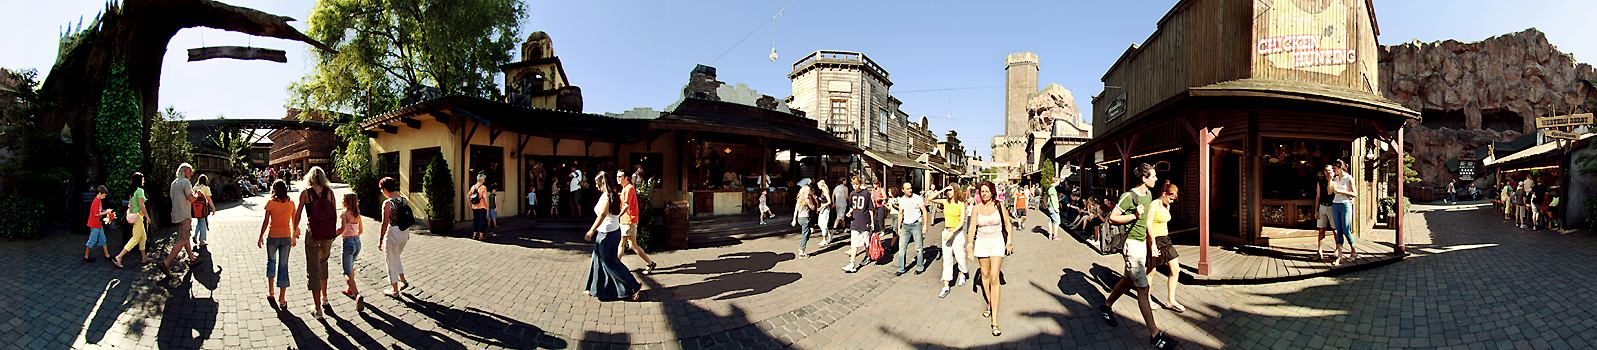 Silver City Phantasialand